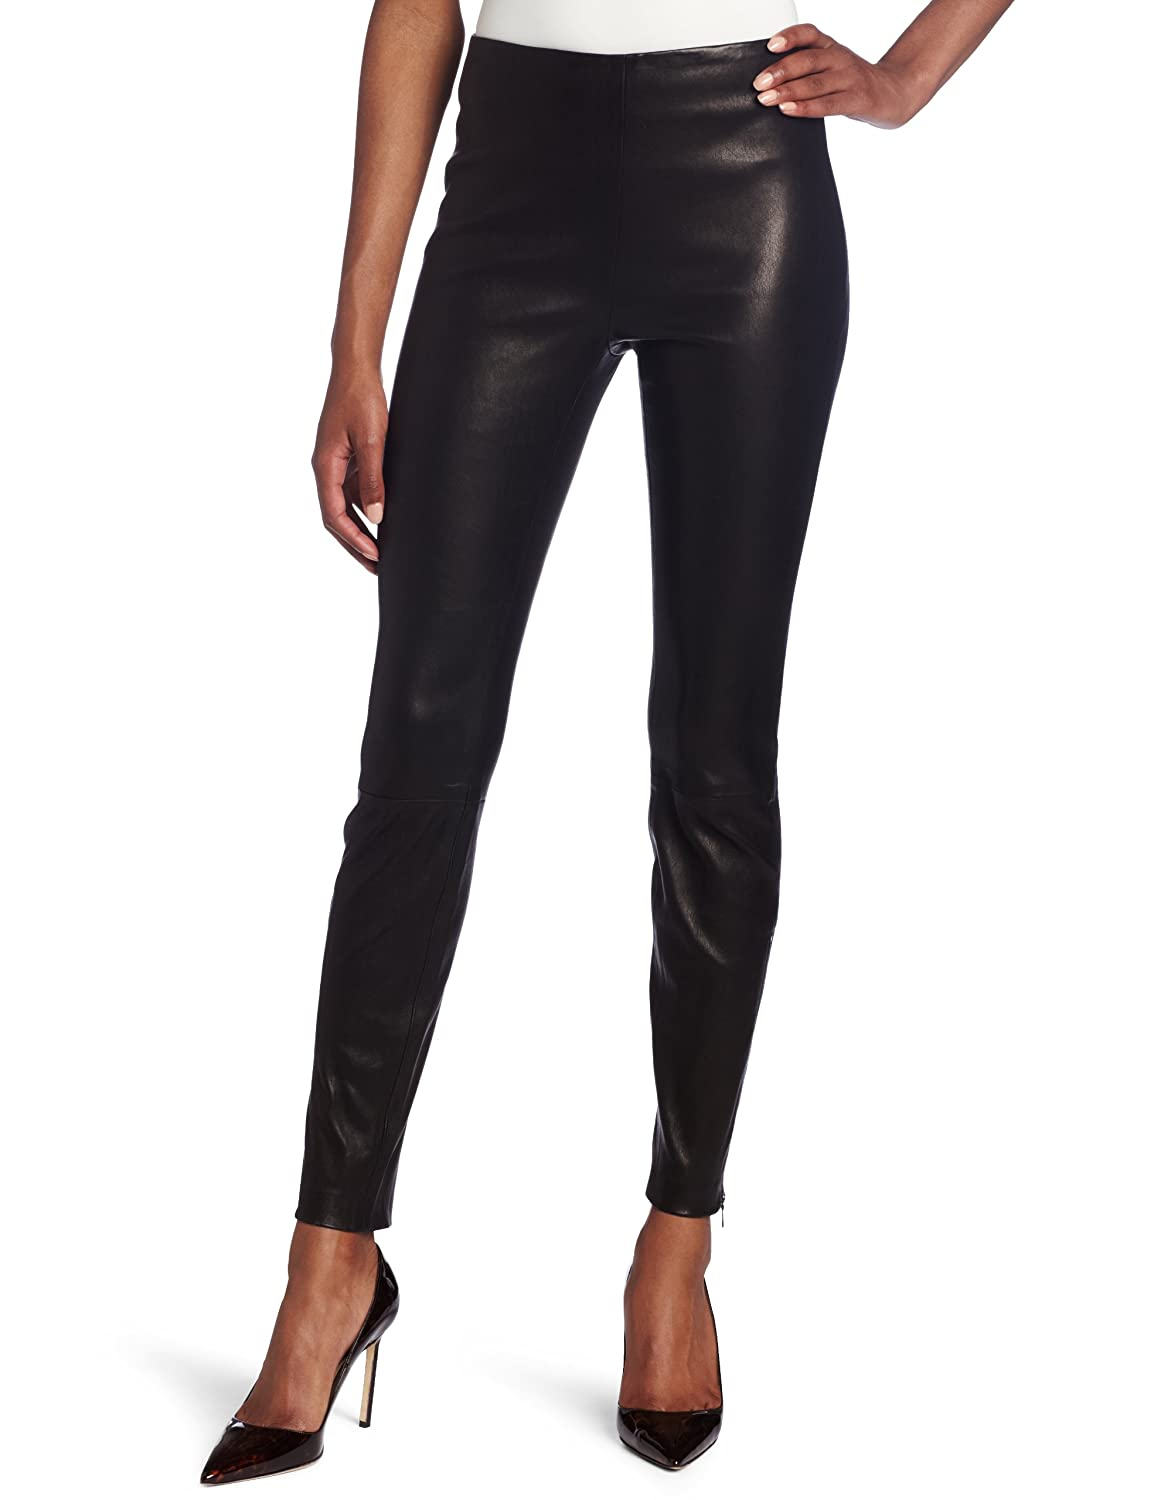 Women's Leather Pants and Jeans by Jamin Leather. We have an Exclusive collection of genuine leather pants for women featuring a wide varietyof styles that .